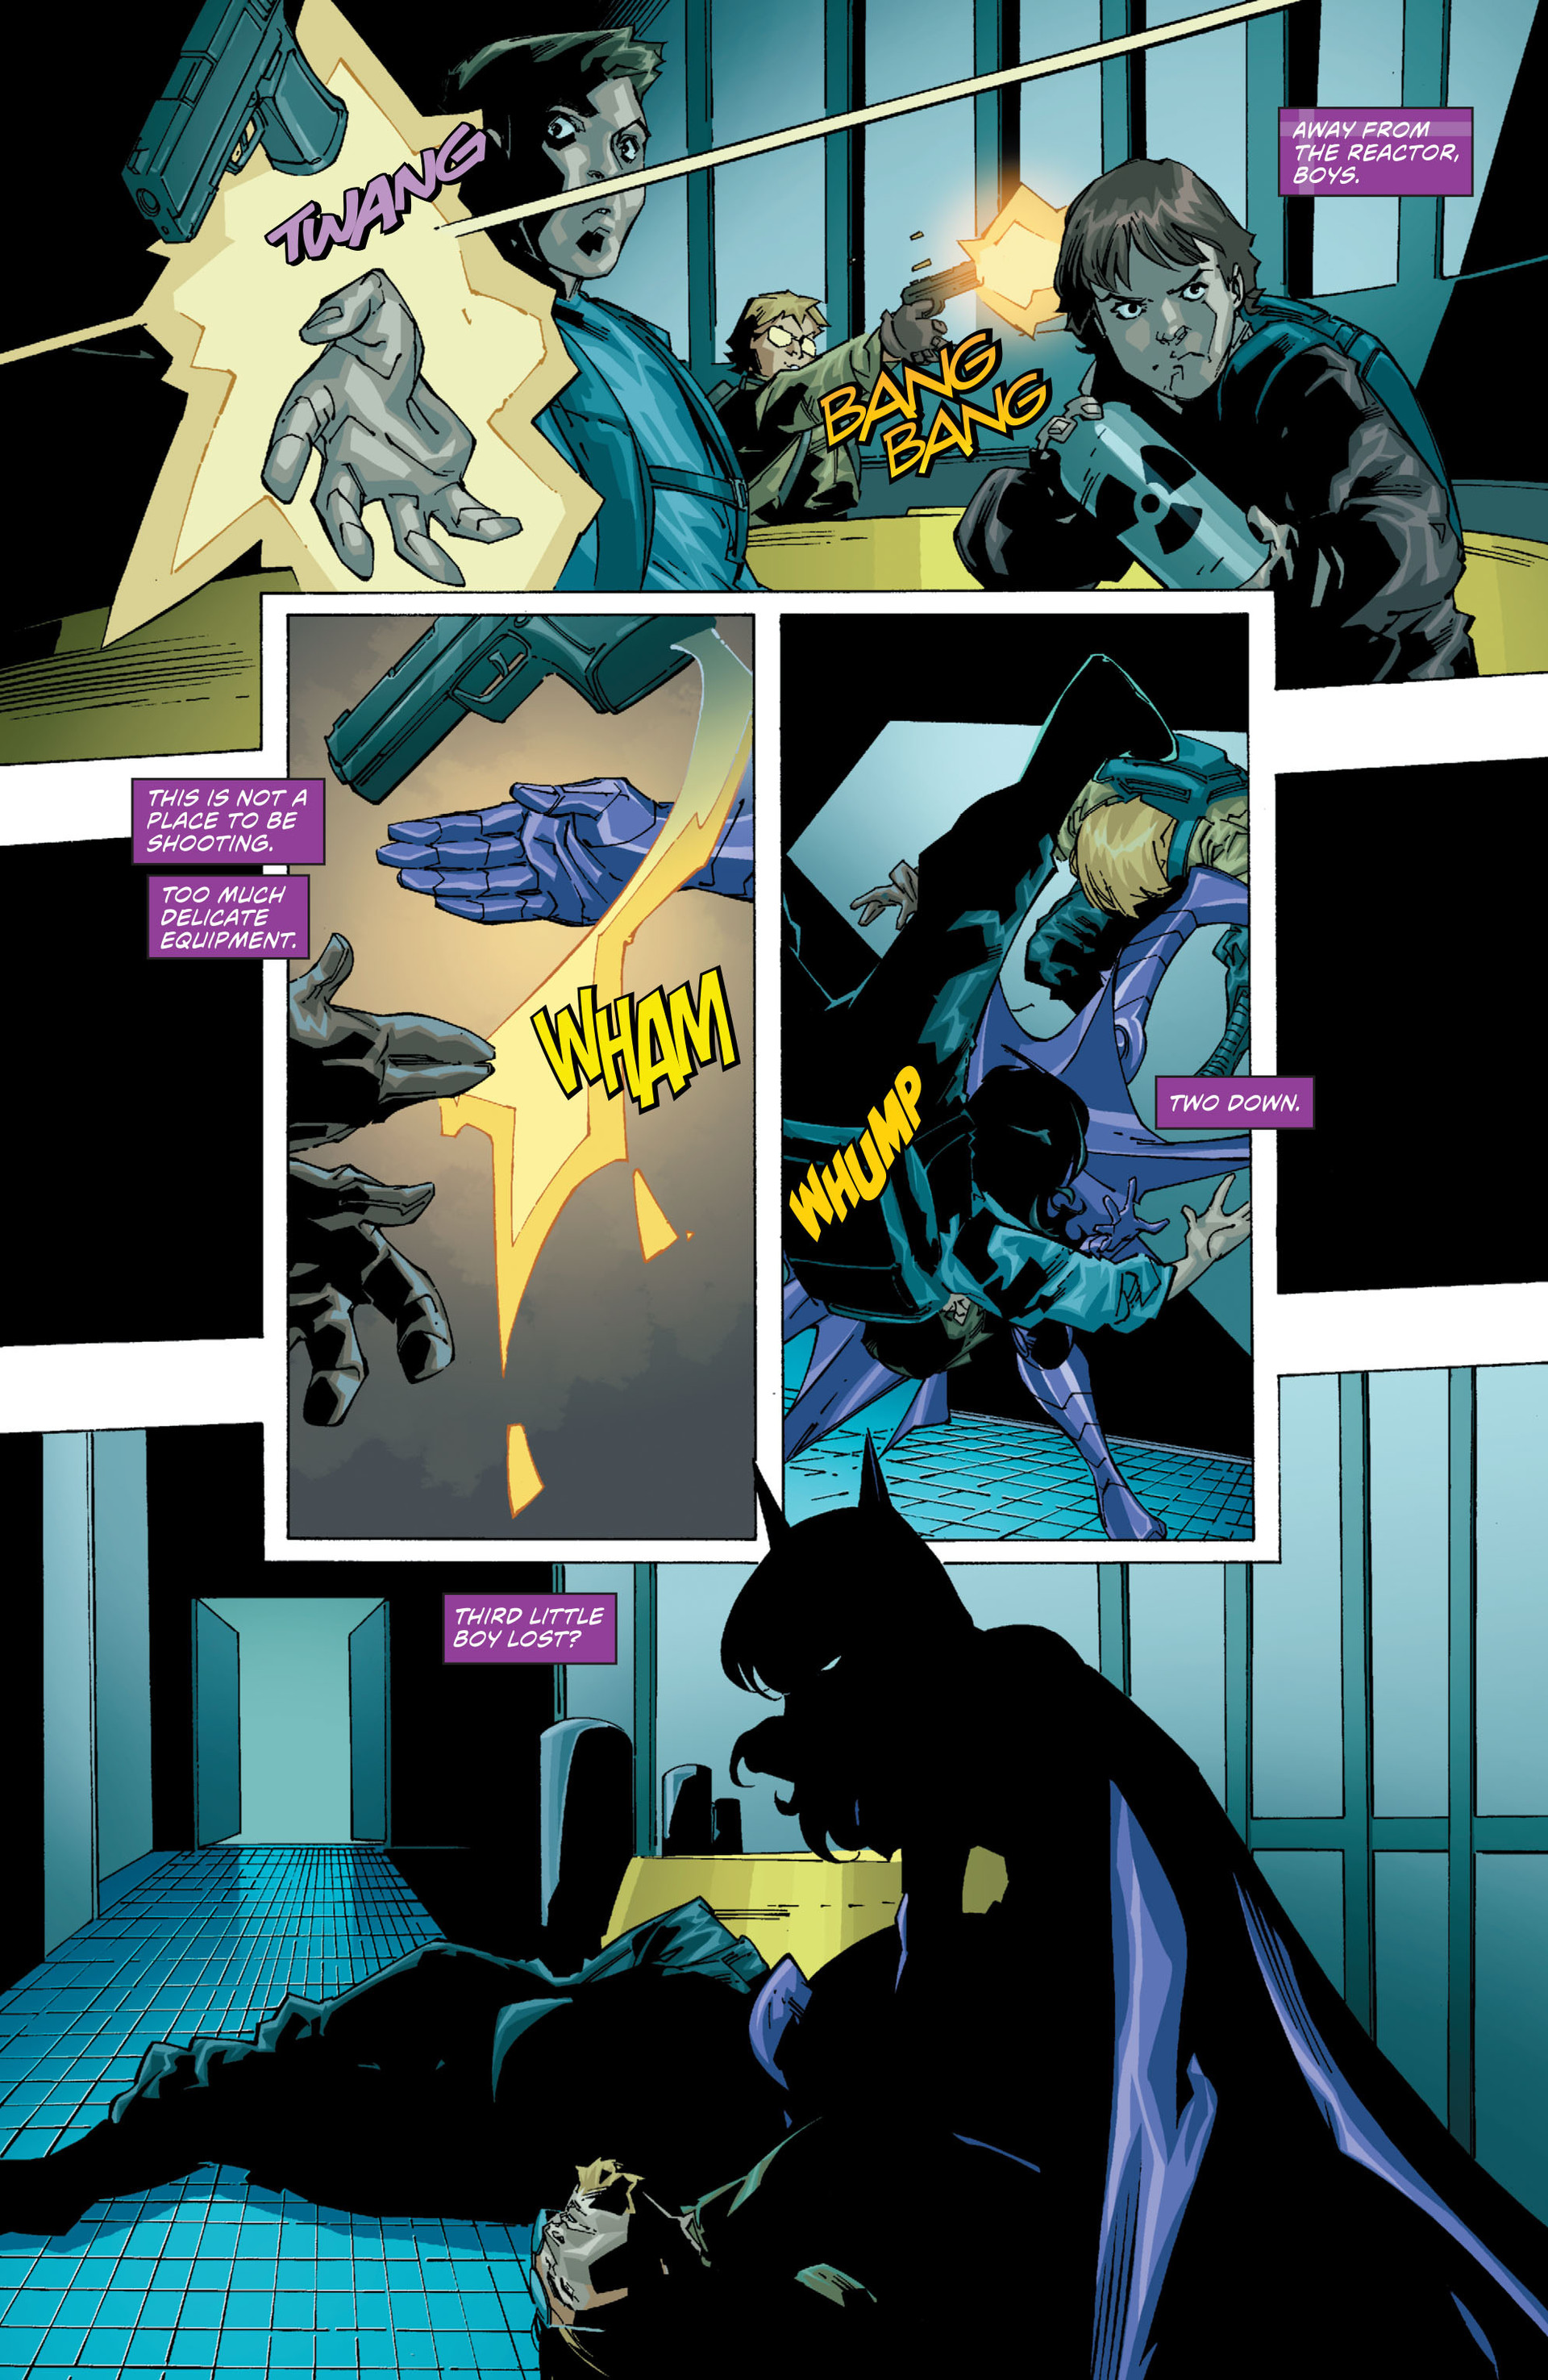 Read online Worlds' Finest comic -  Issue #23 - 13